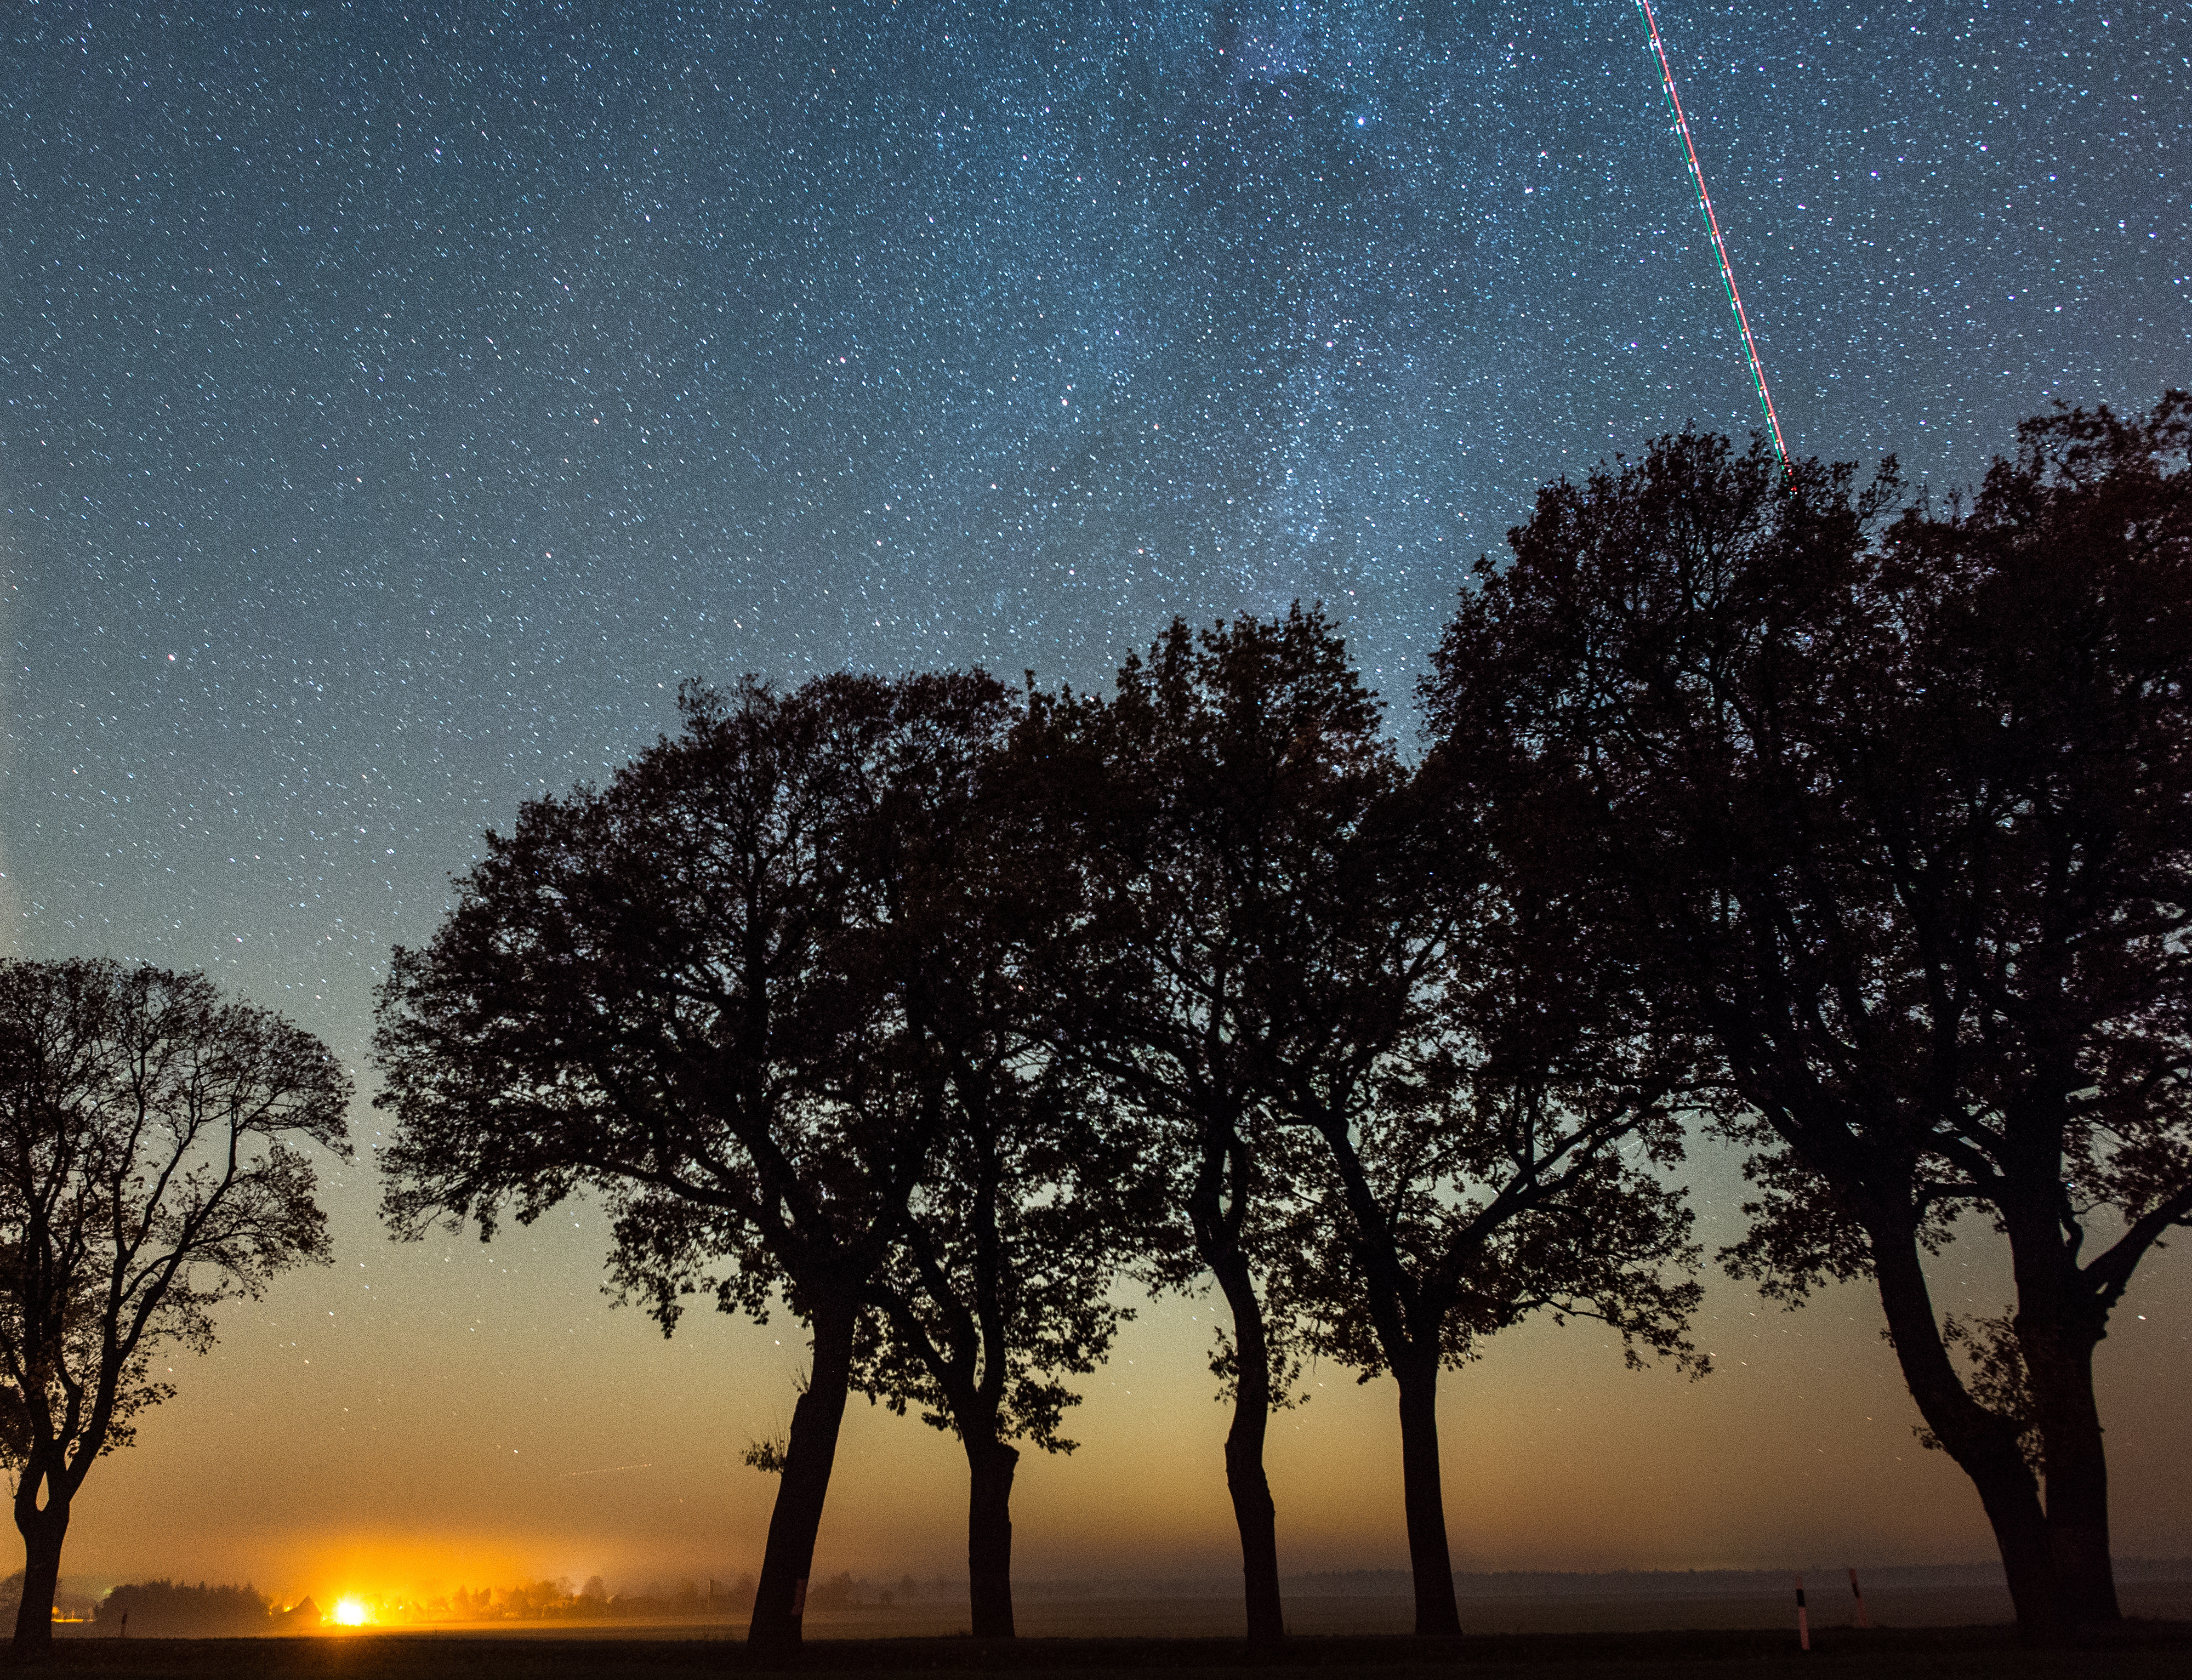 How to Watch the 2018 Leonid Meteor Shower This Weekend